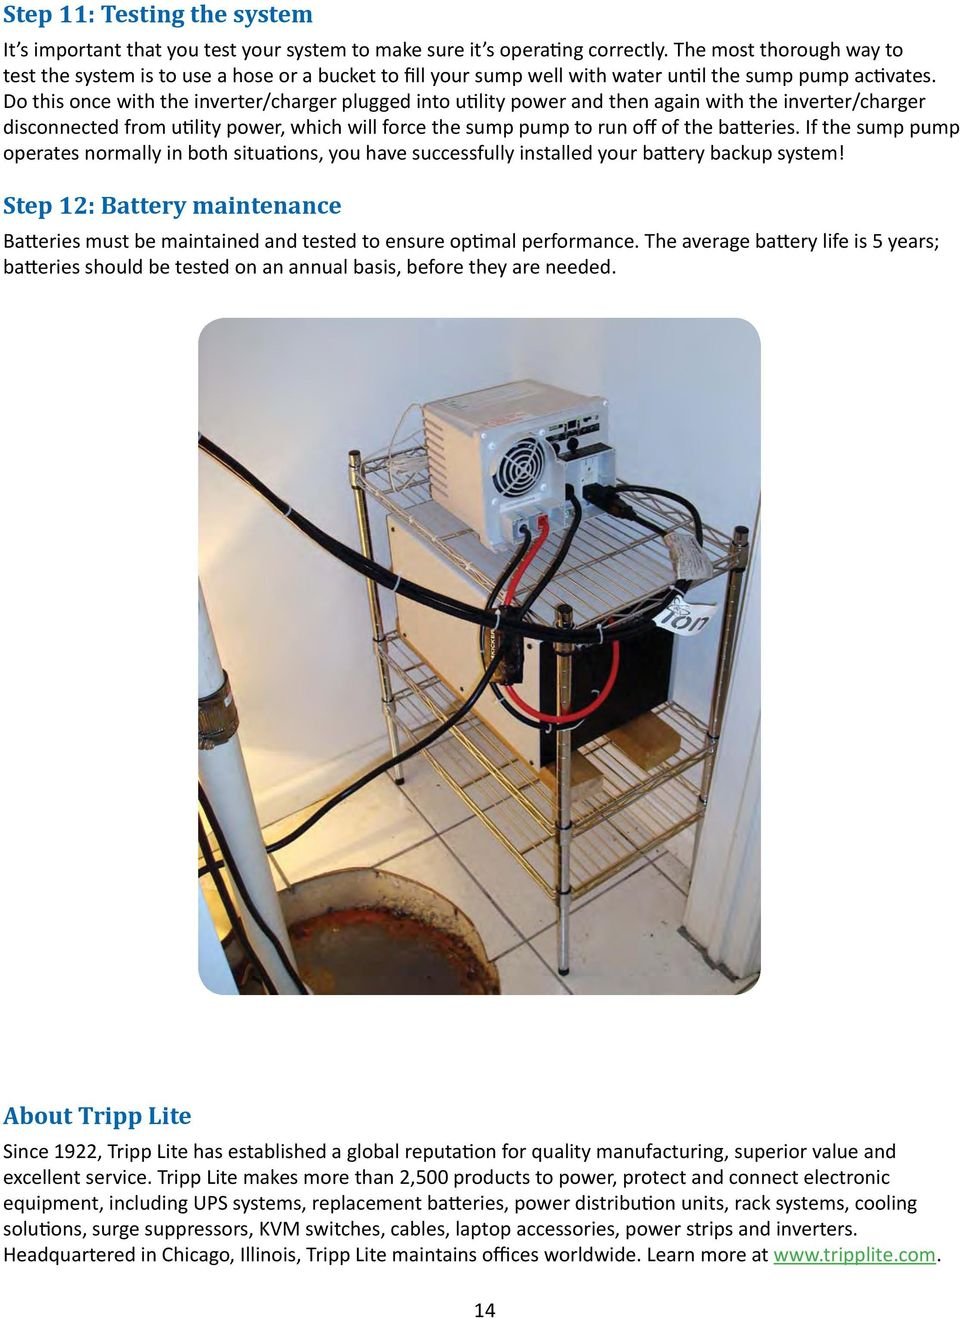 Selecting And Installing A Tripp Lite Battery Backup System For Your Sun Pump Switch Wiring Diagram Do This Once With The Inverter Charger Plugged Into Utility Power Then Again